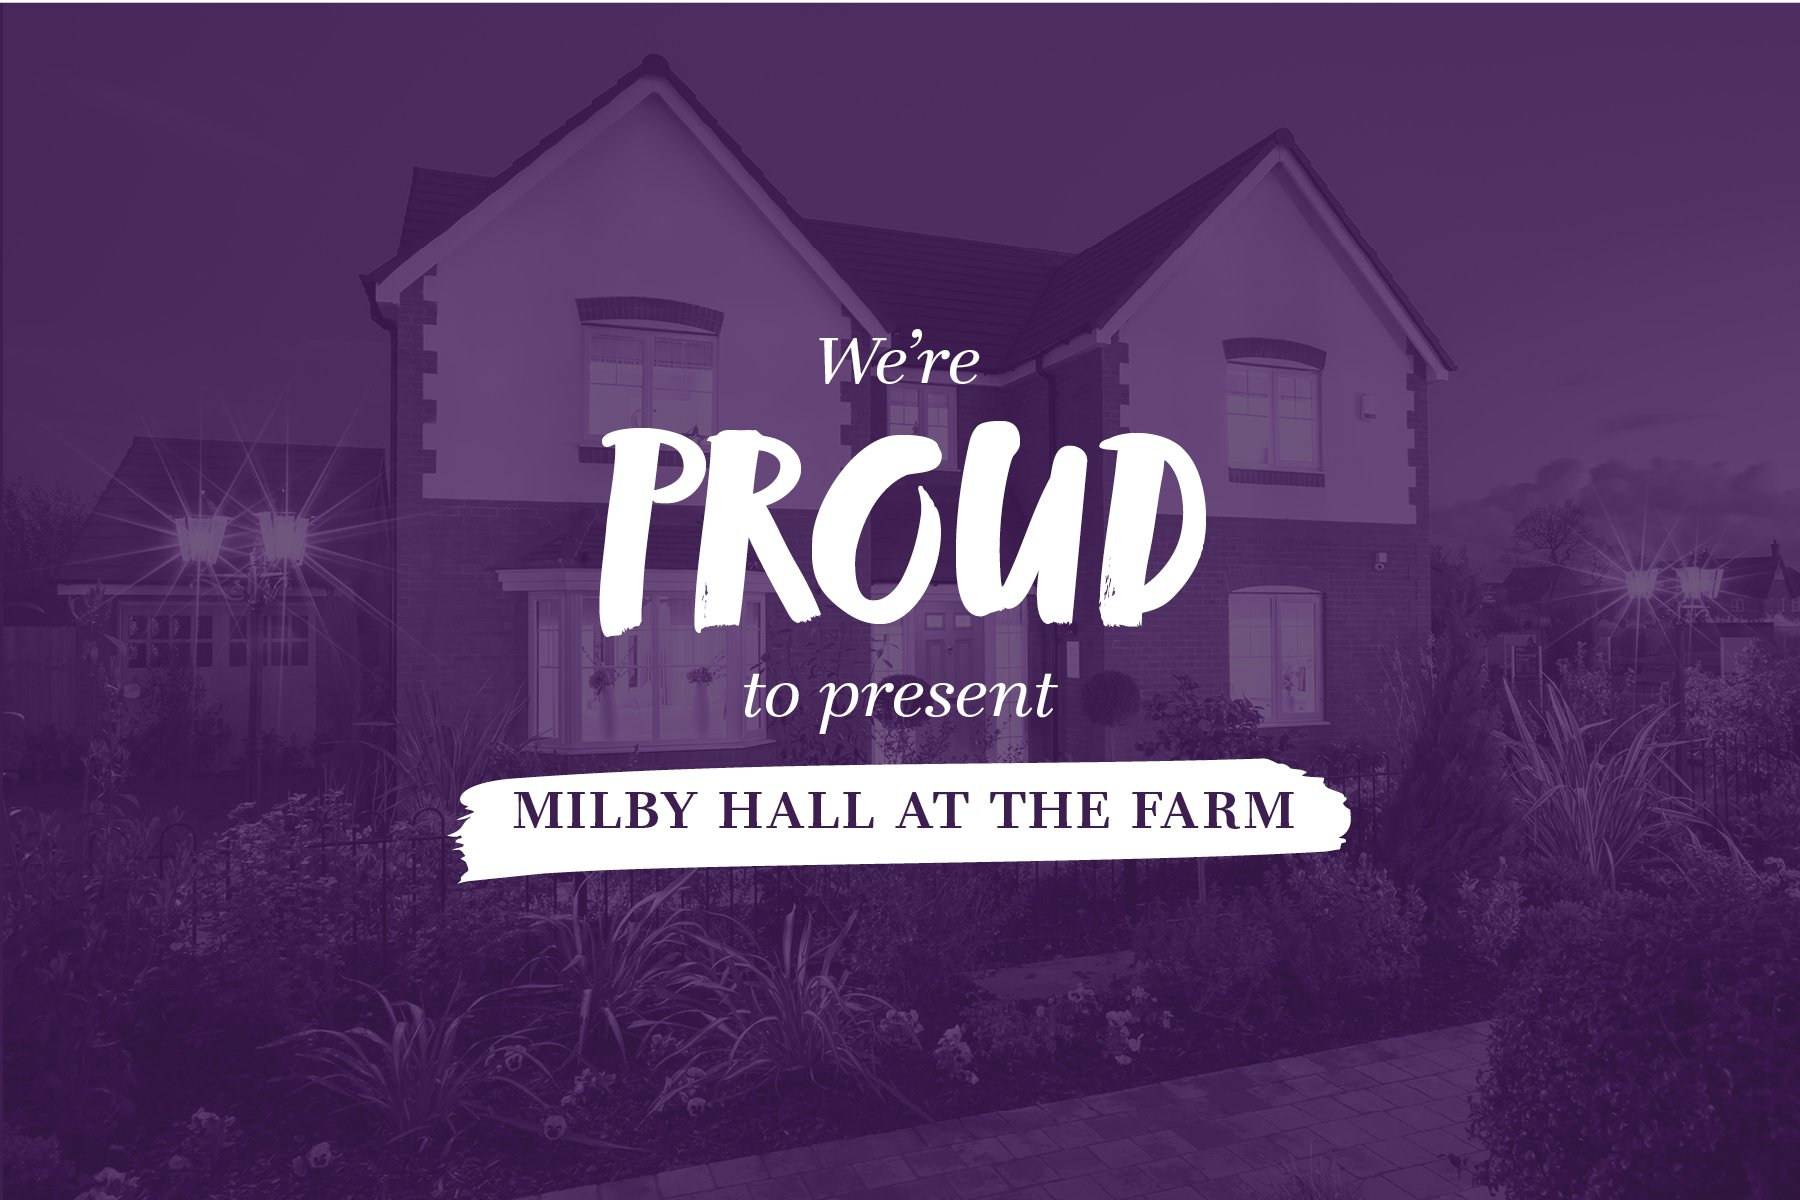 50388_TWM - Proud carousel graphics_1800x1200px_The Farm_Milby-Hall-at-the-Farm